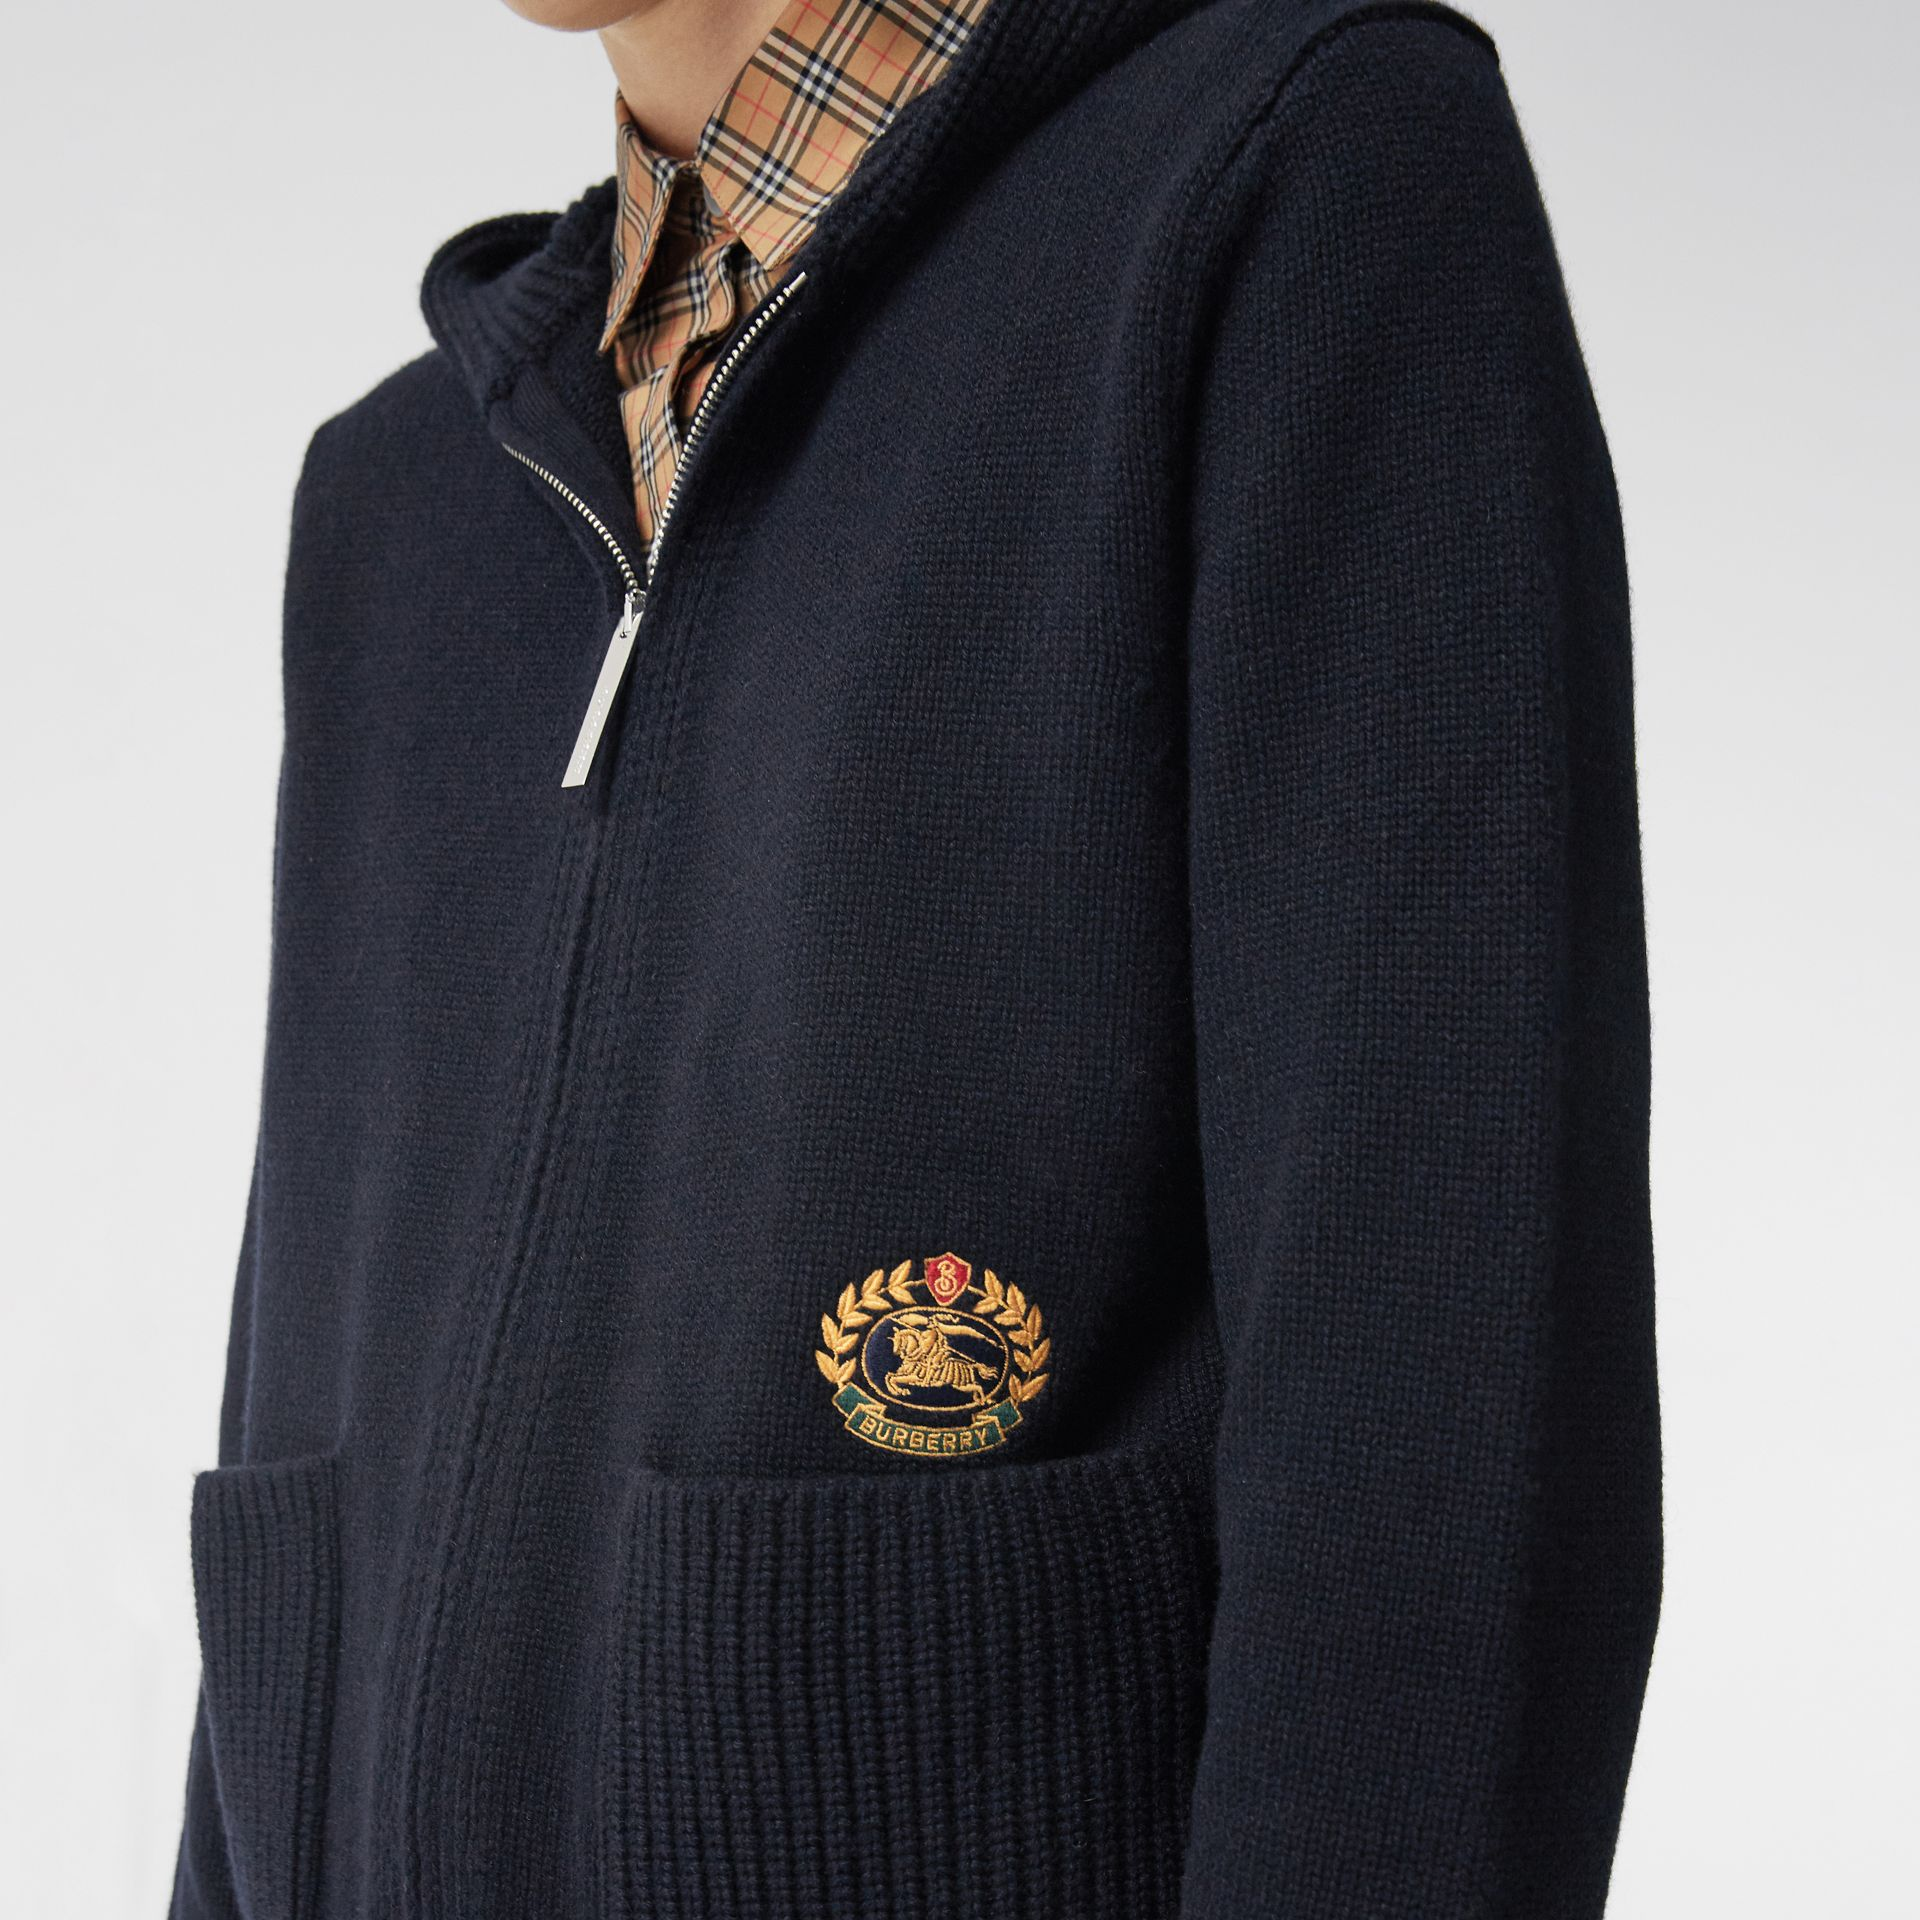 Embroidered Crest Cashmere Hooded Top in Navy - Women | Burberry United Kingdom - gallery image 1